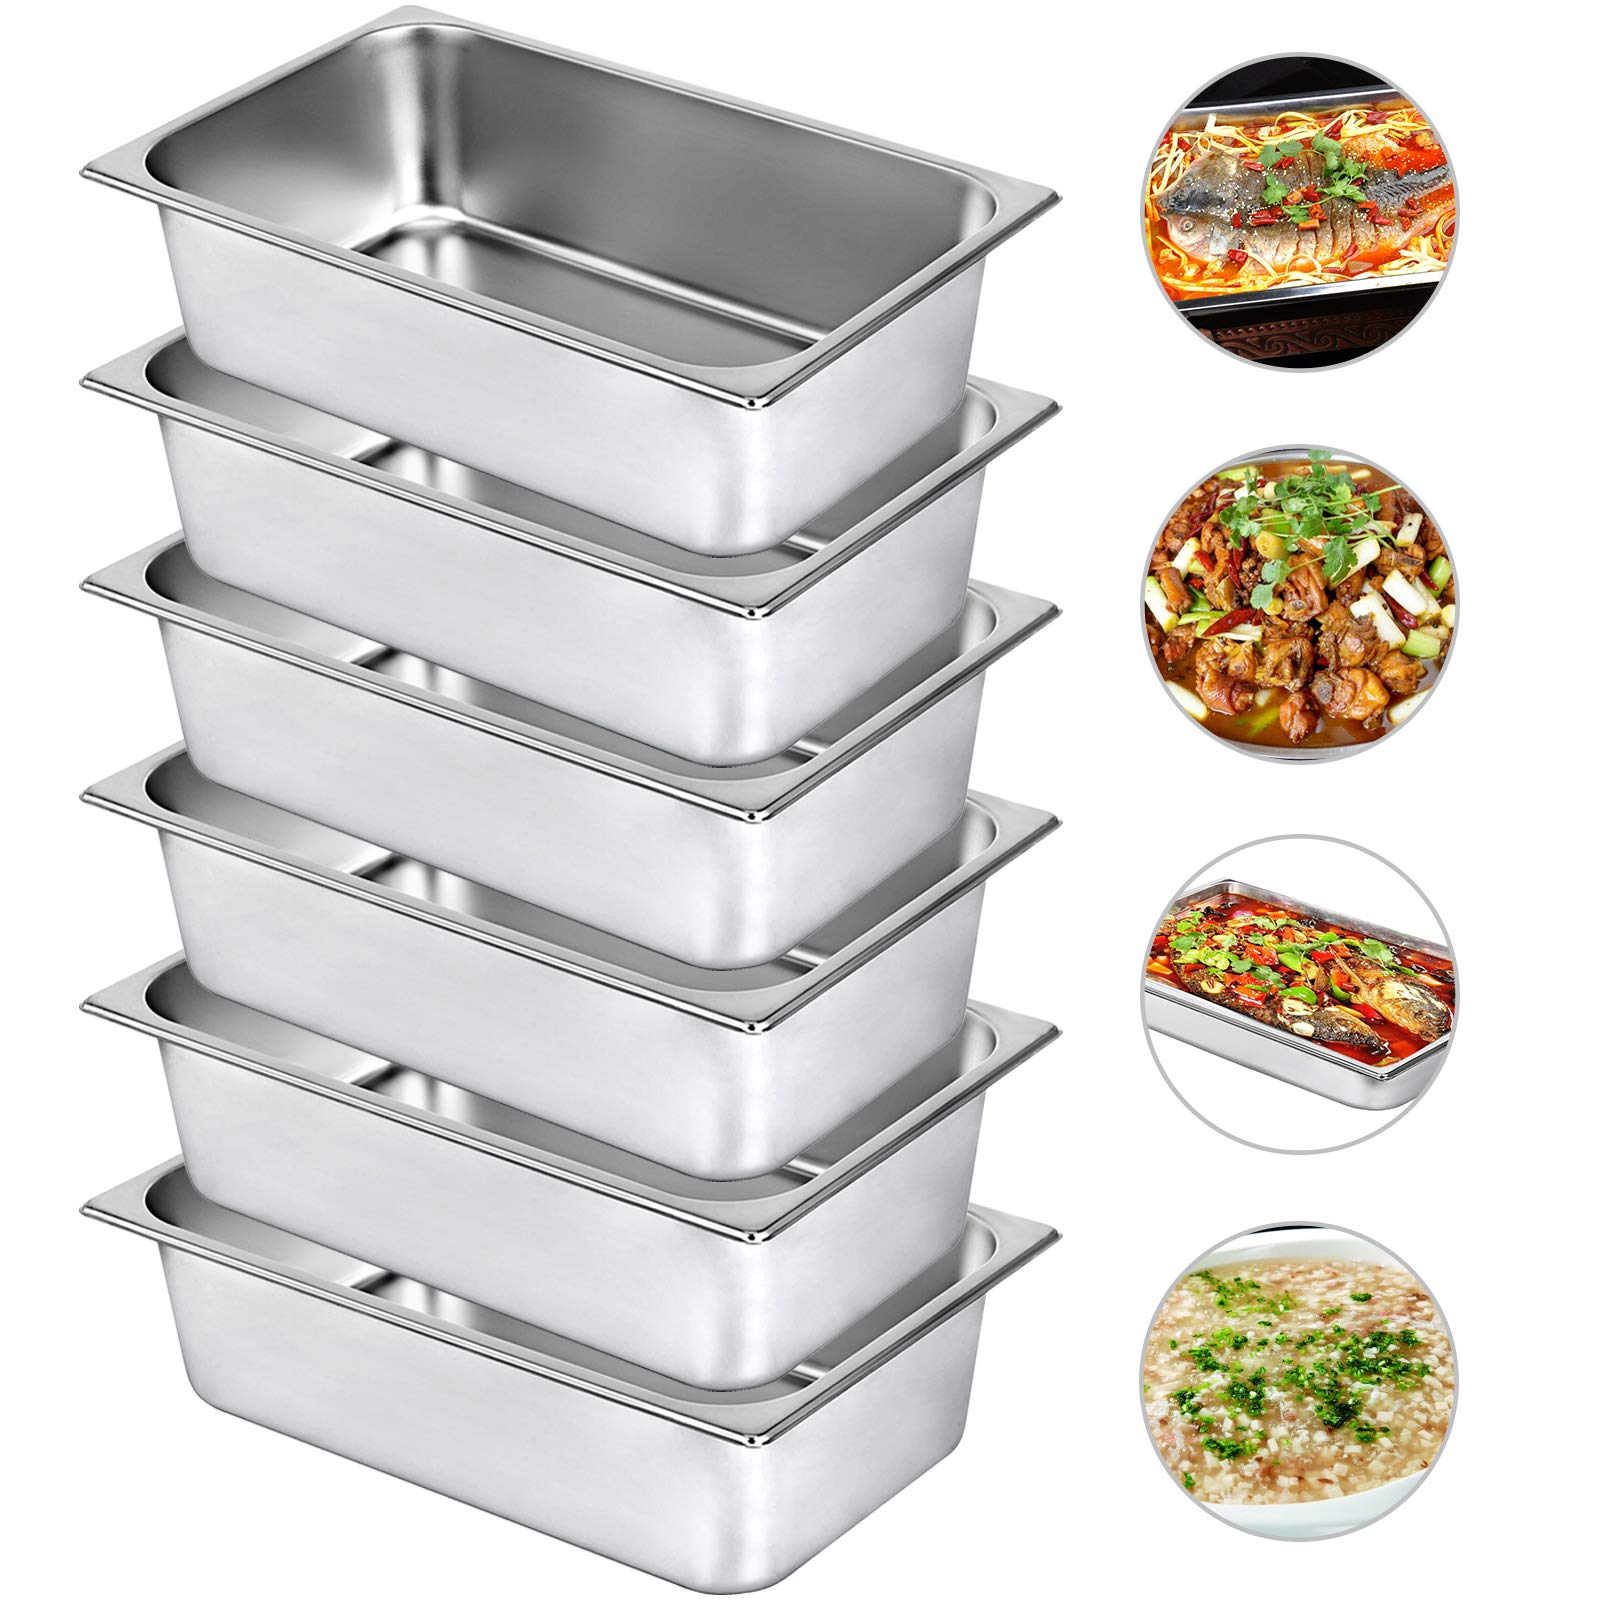 Mophorn 6 Inch Deep Steam Table Pan Full Size 21 Quart Stainless Steel Anti Jam Steam Table Pan Set of 6 Food Pans by Mophorn